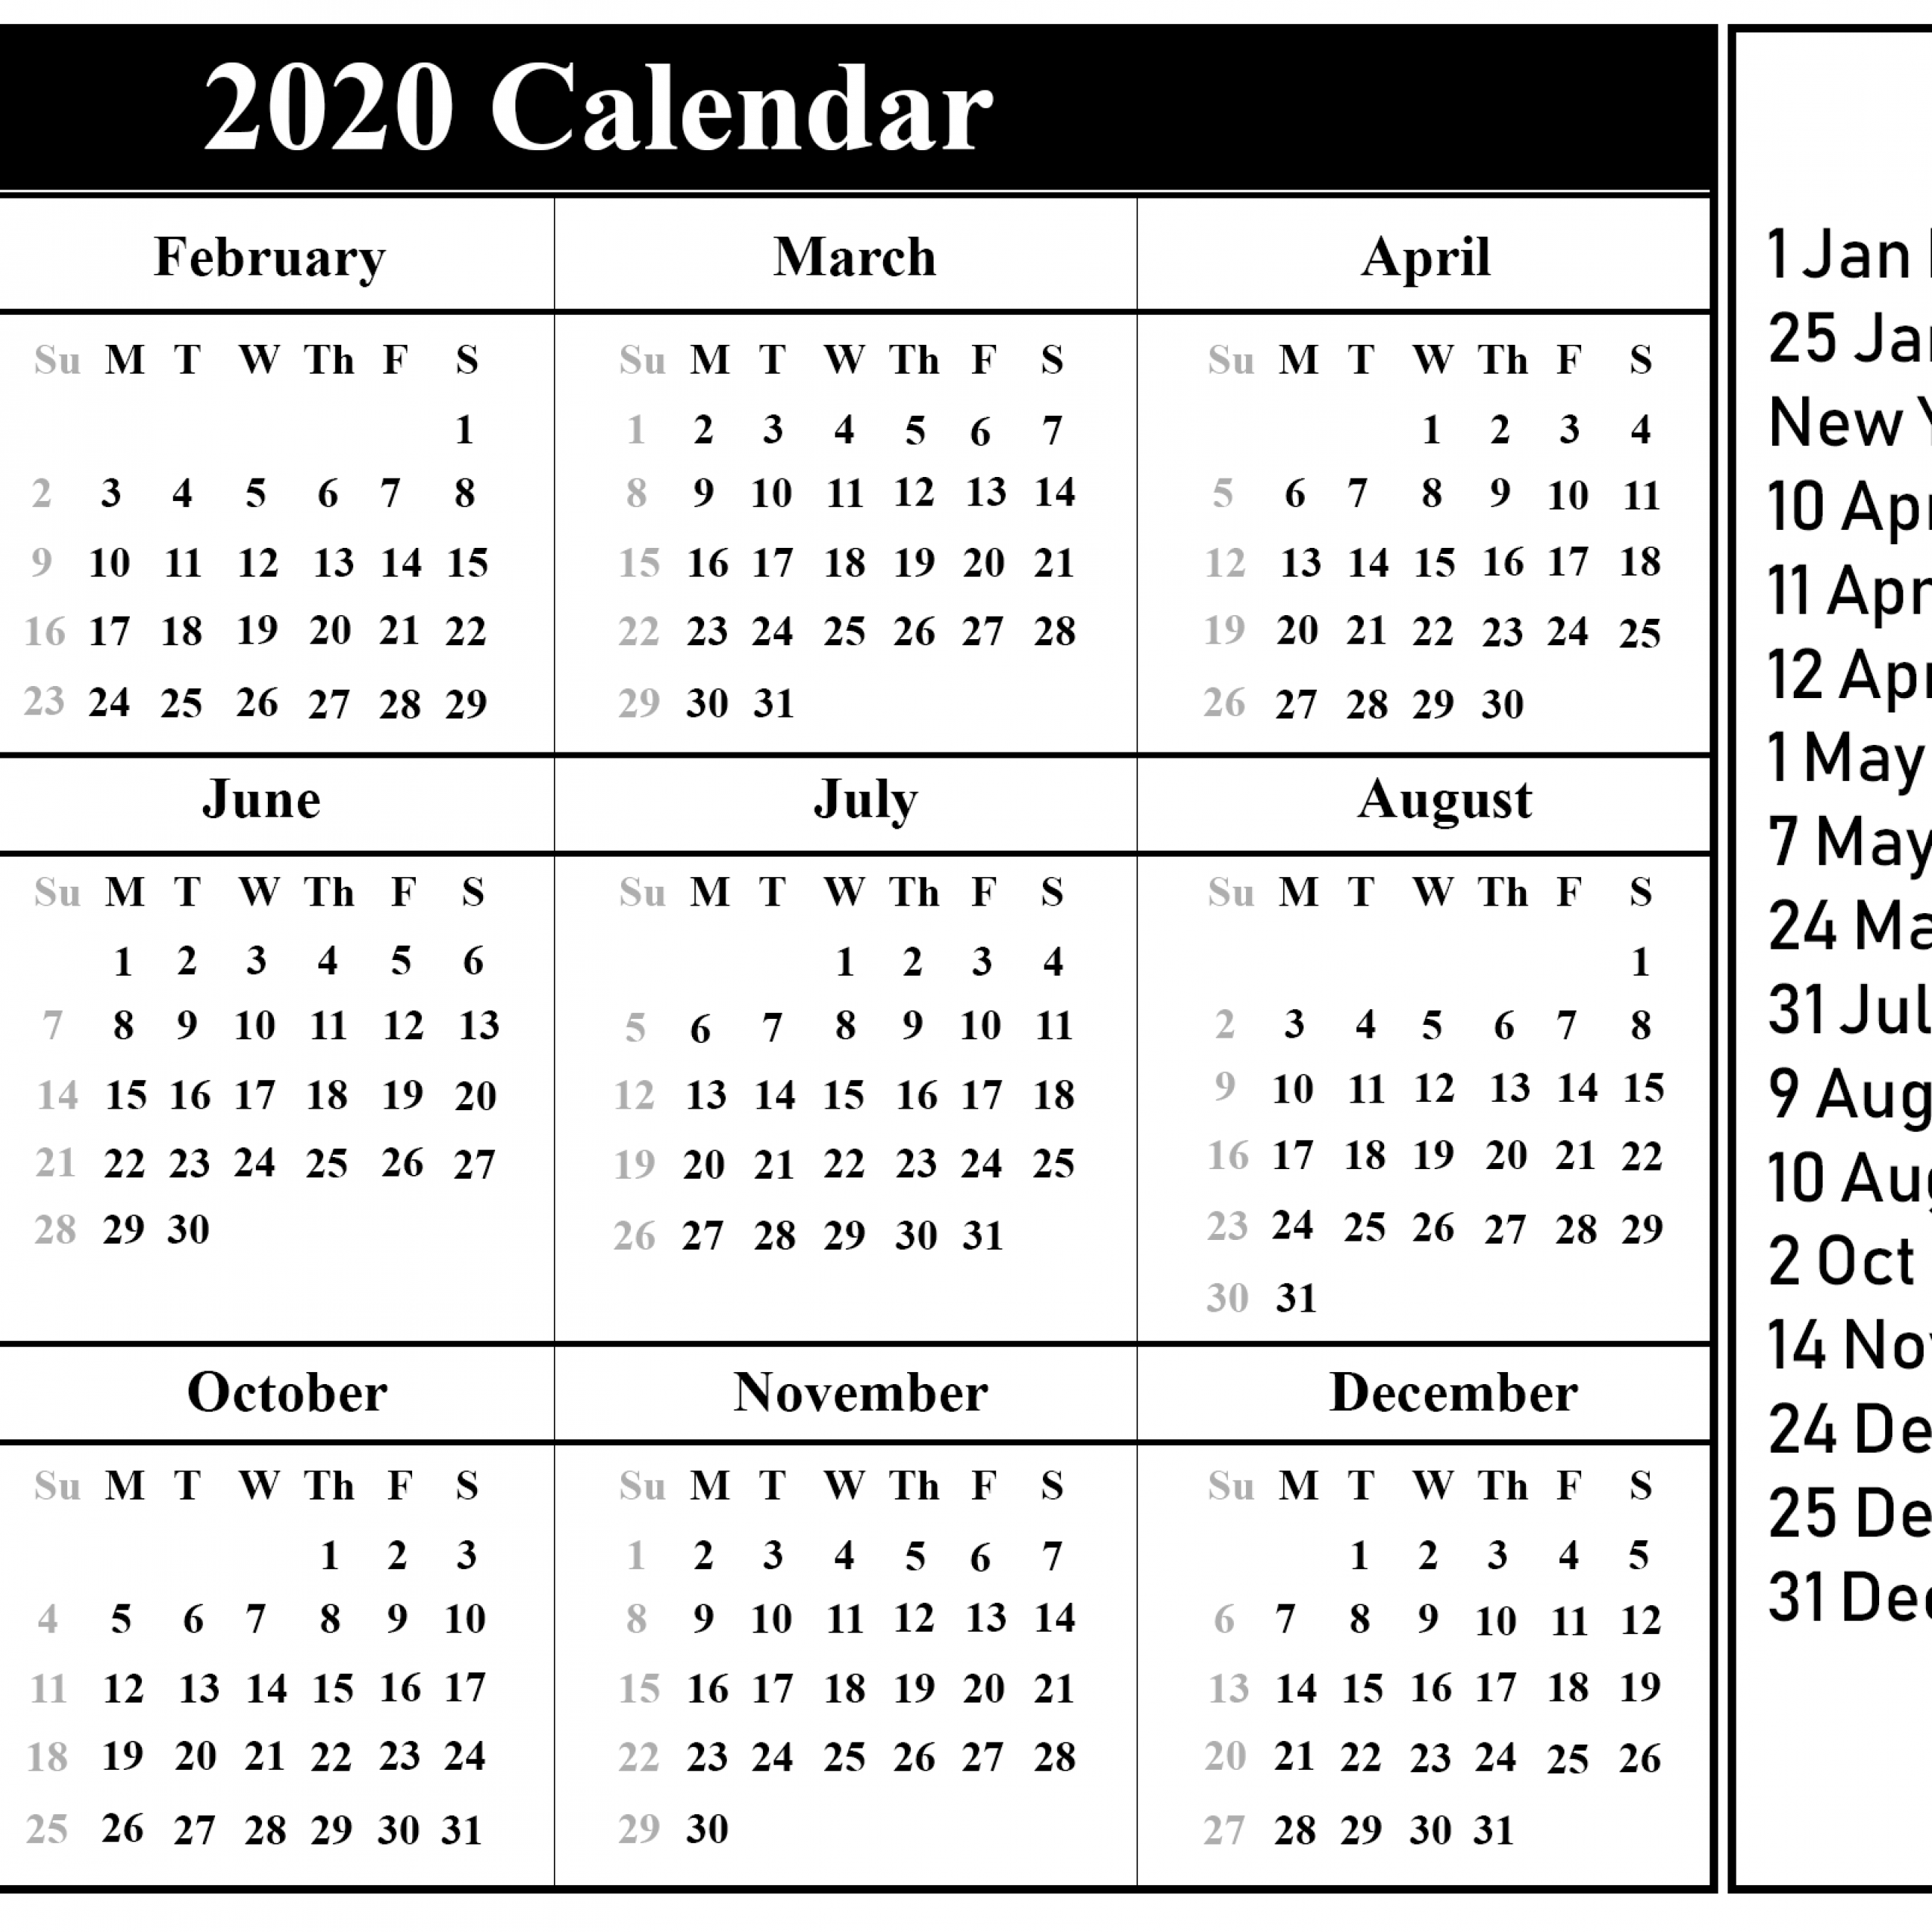 Calendar 2020 Printable With Holidays Full Months